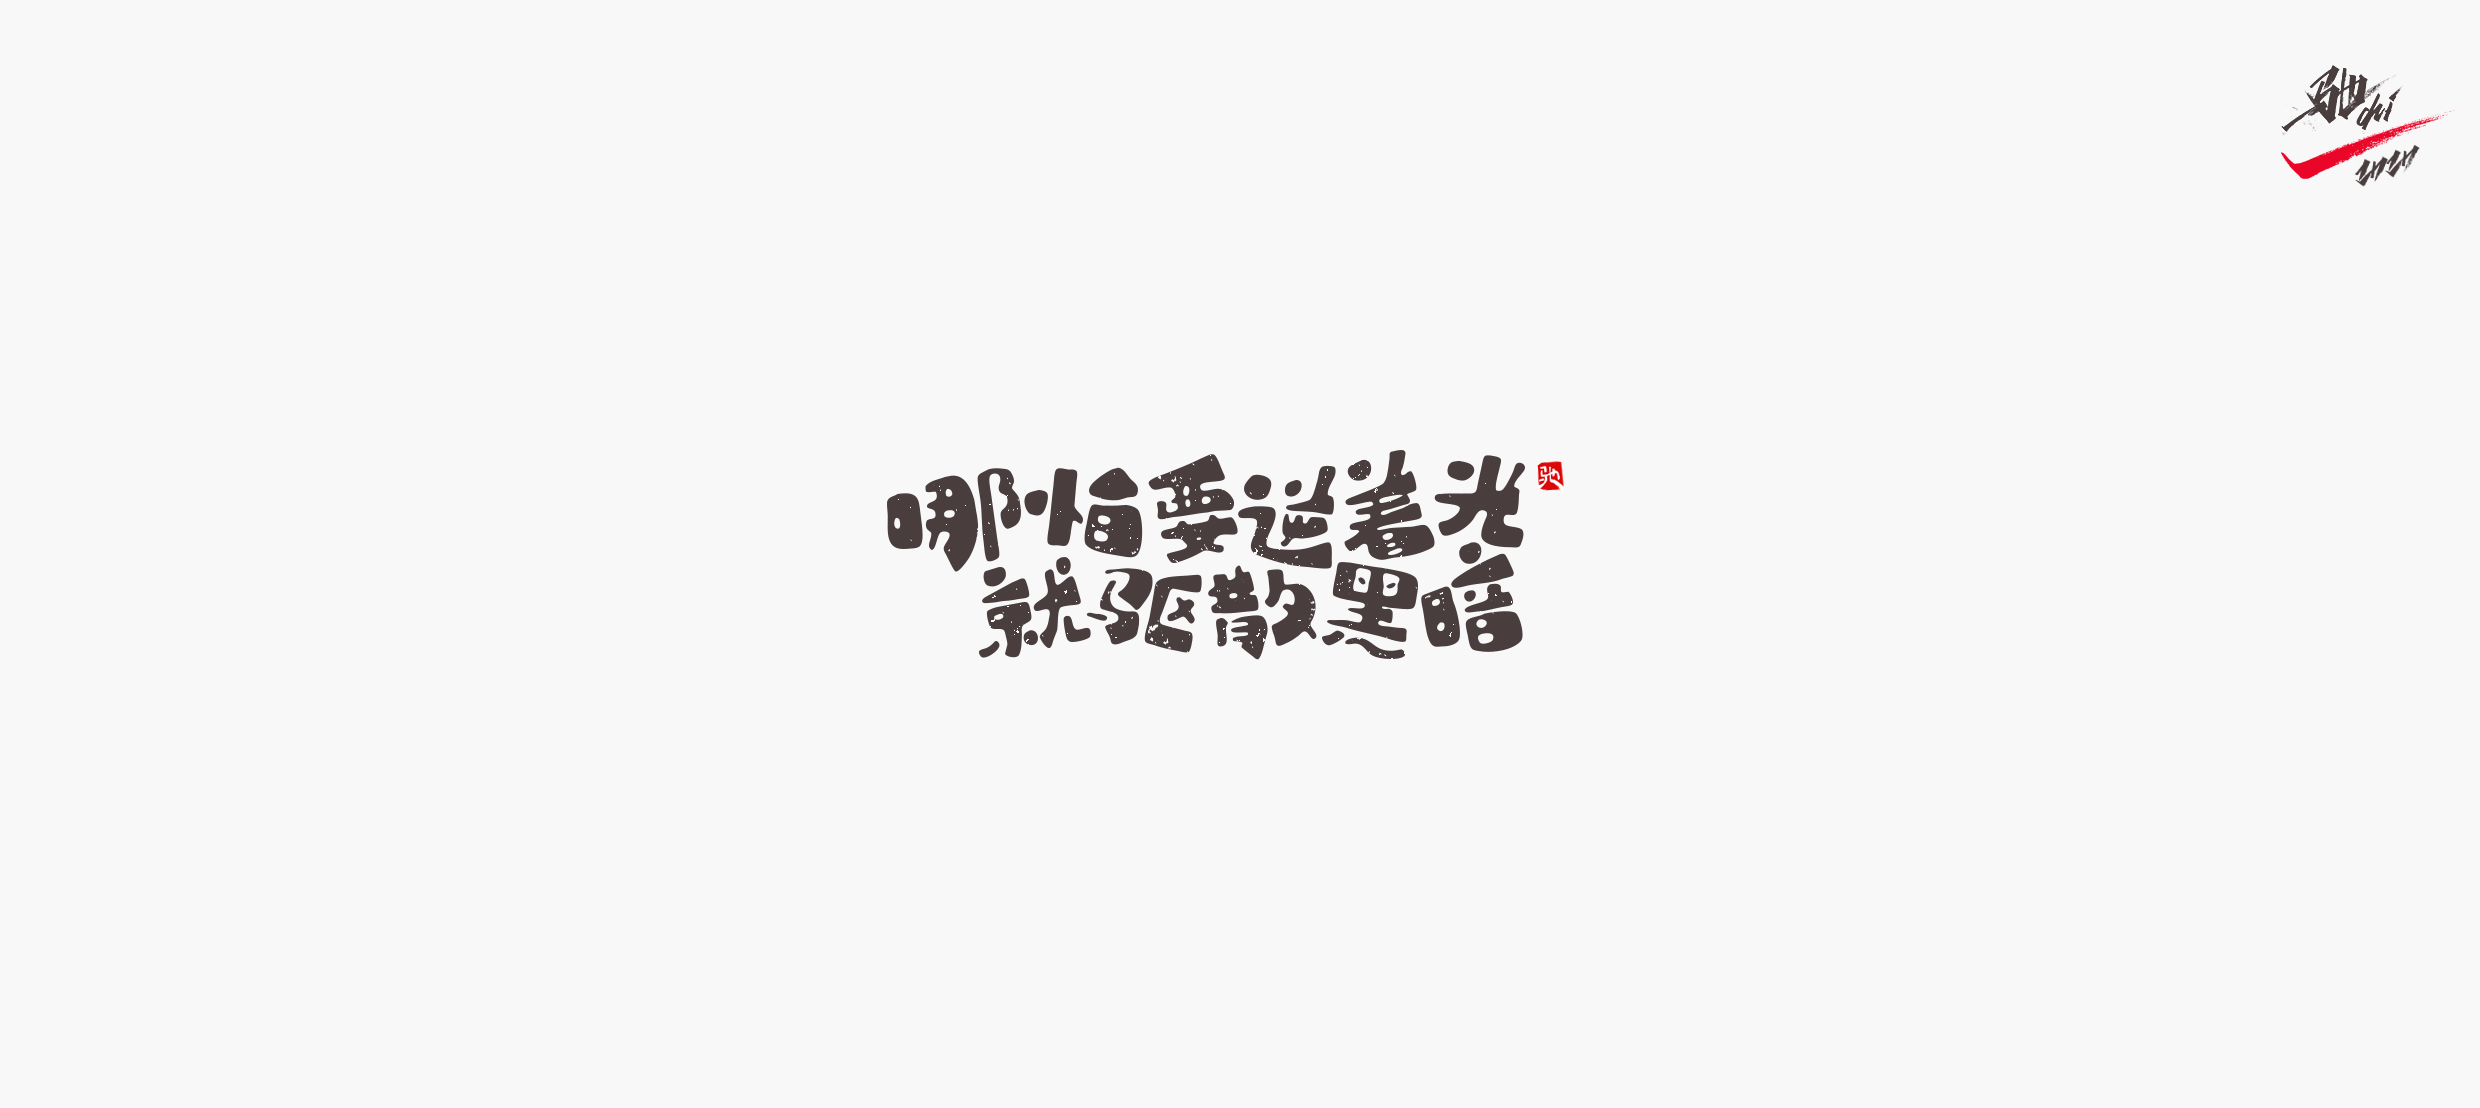 Interesting Chinese Creative Font Design-Inspirational song